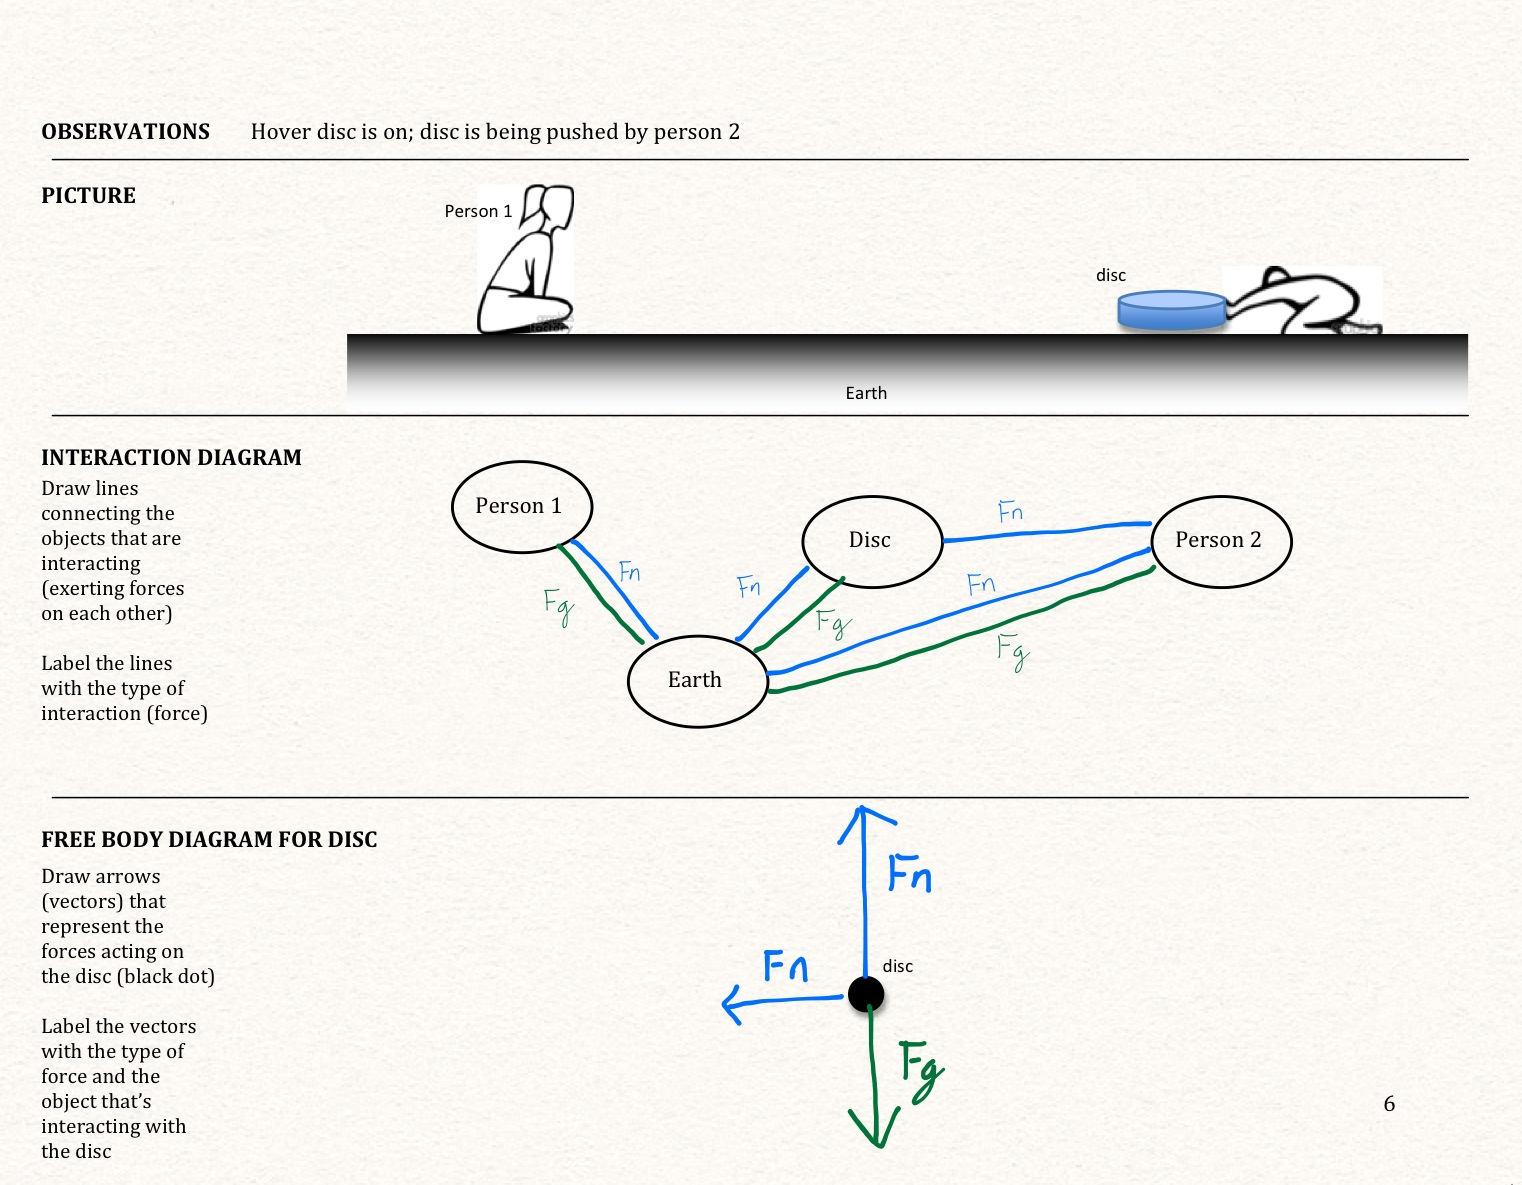 Astonishing Drawing The Free Body Diagram Of The Disk New Model Wiring Diagram Wiring Digital Resources Remcakbiperorg